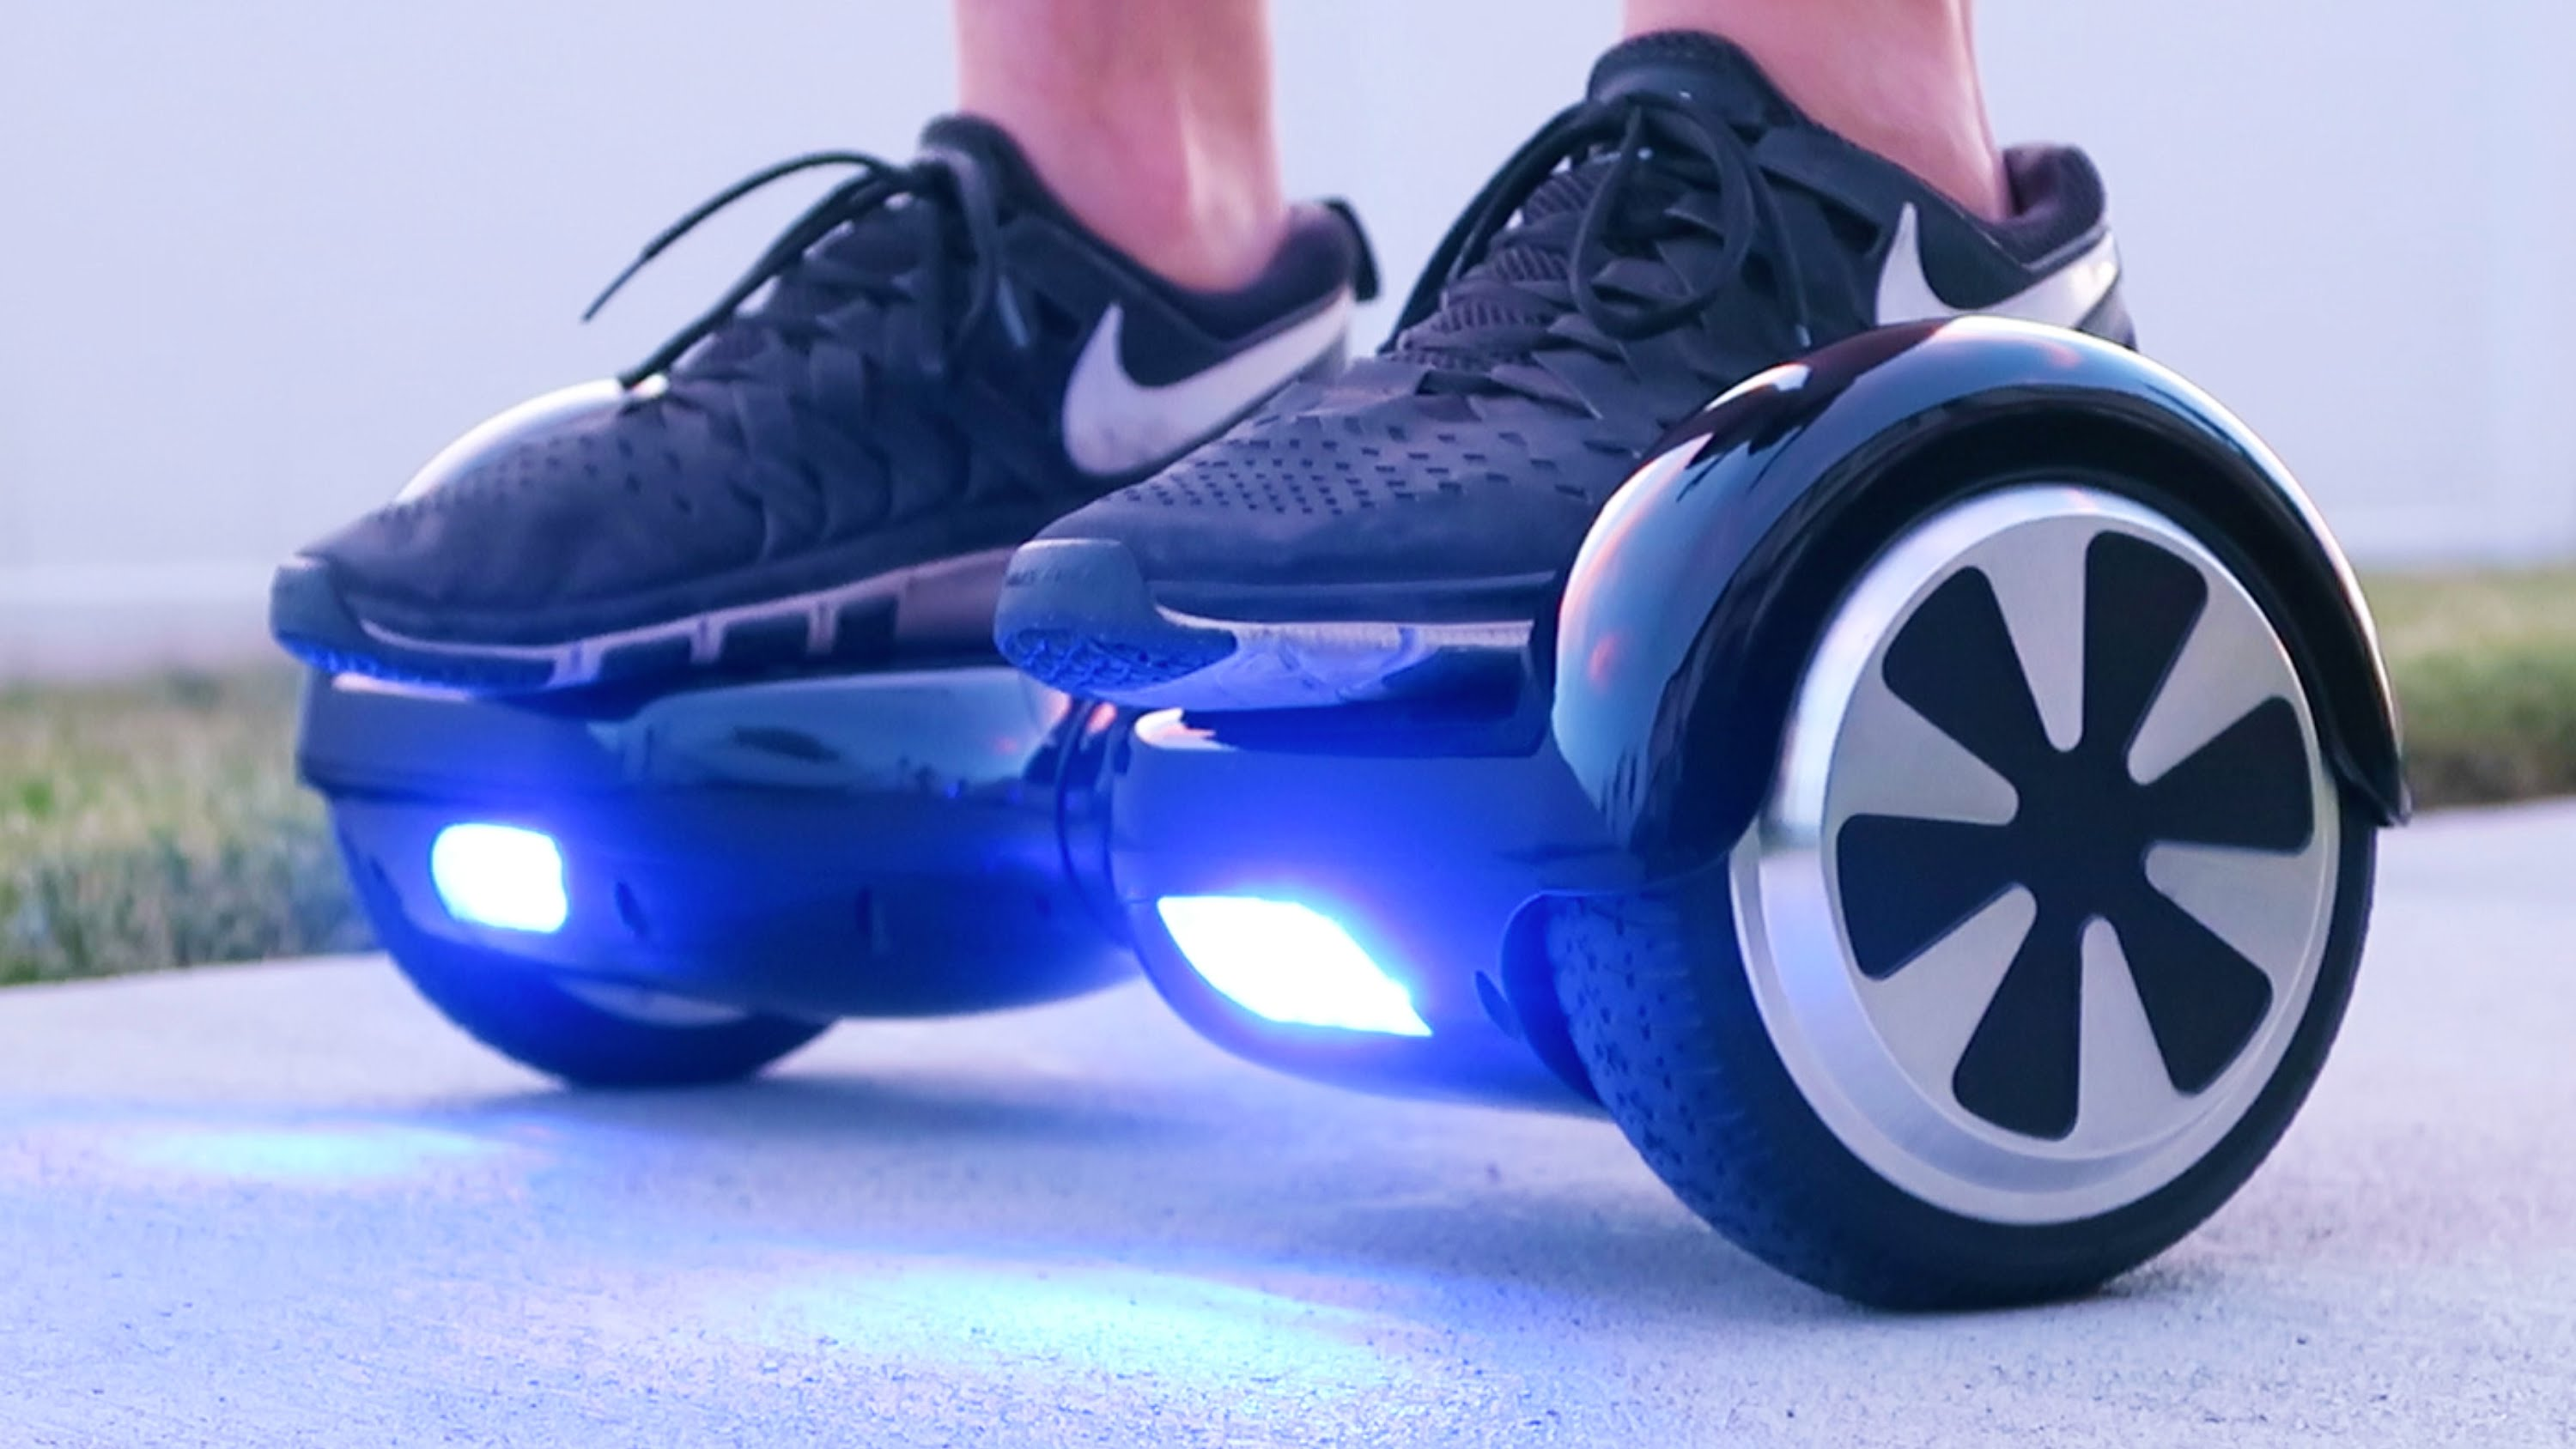 Things to be aware of while buying a hoverboard